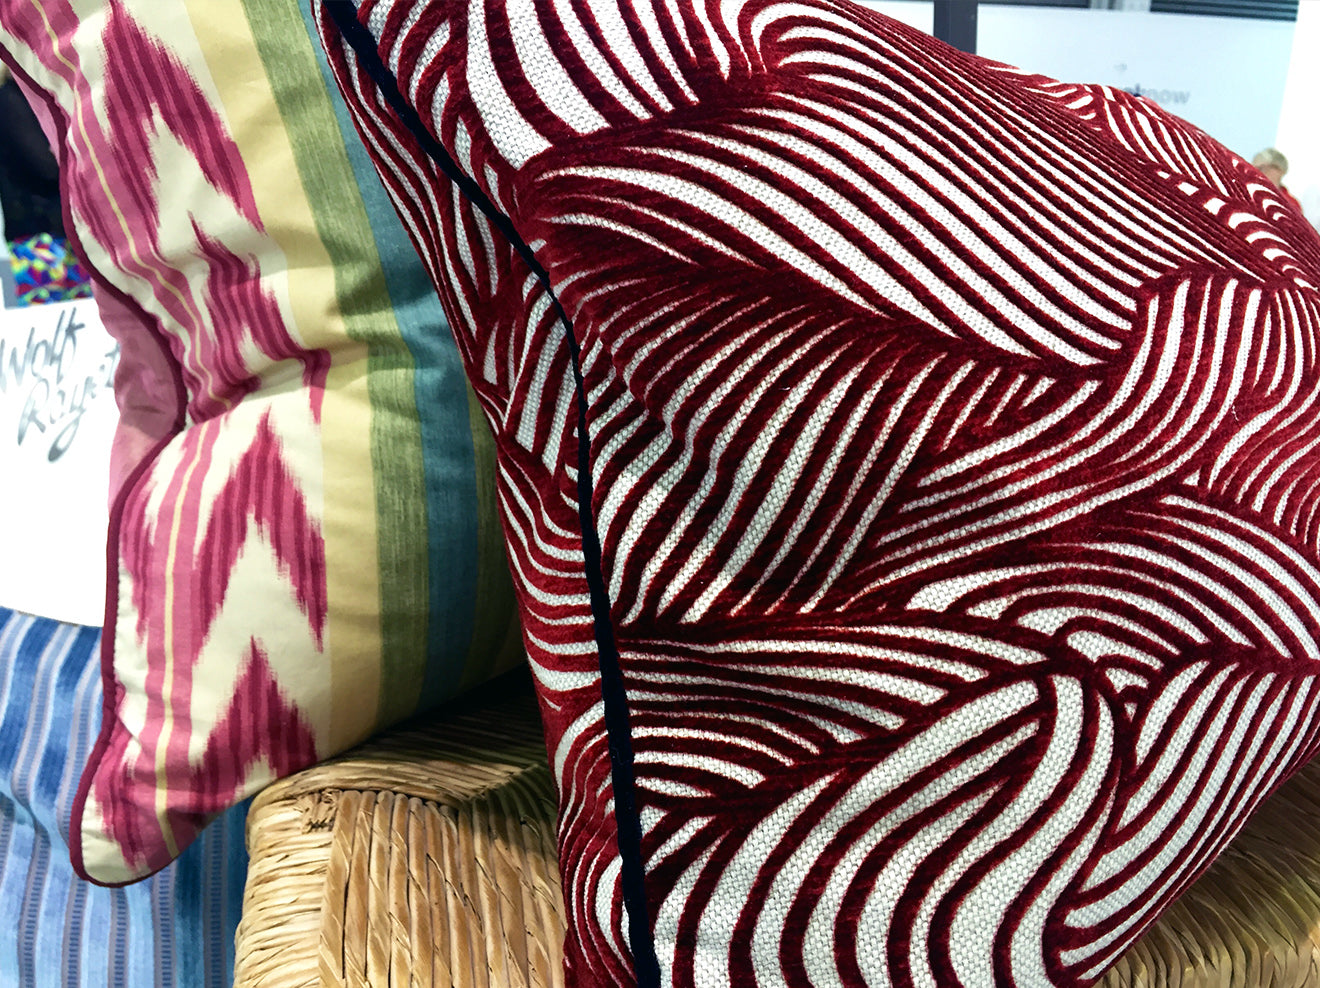 Lauriger luxury cushions with vibrant prints